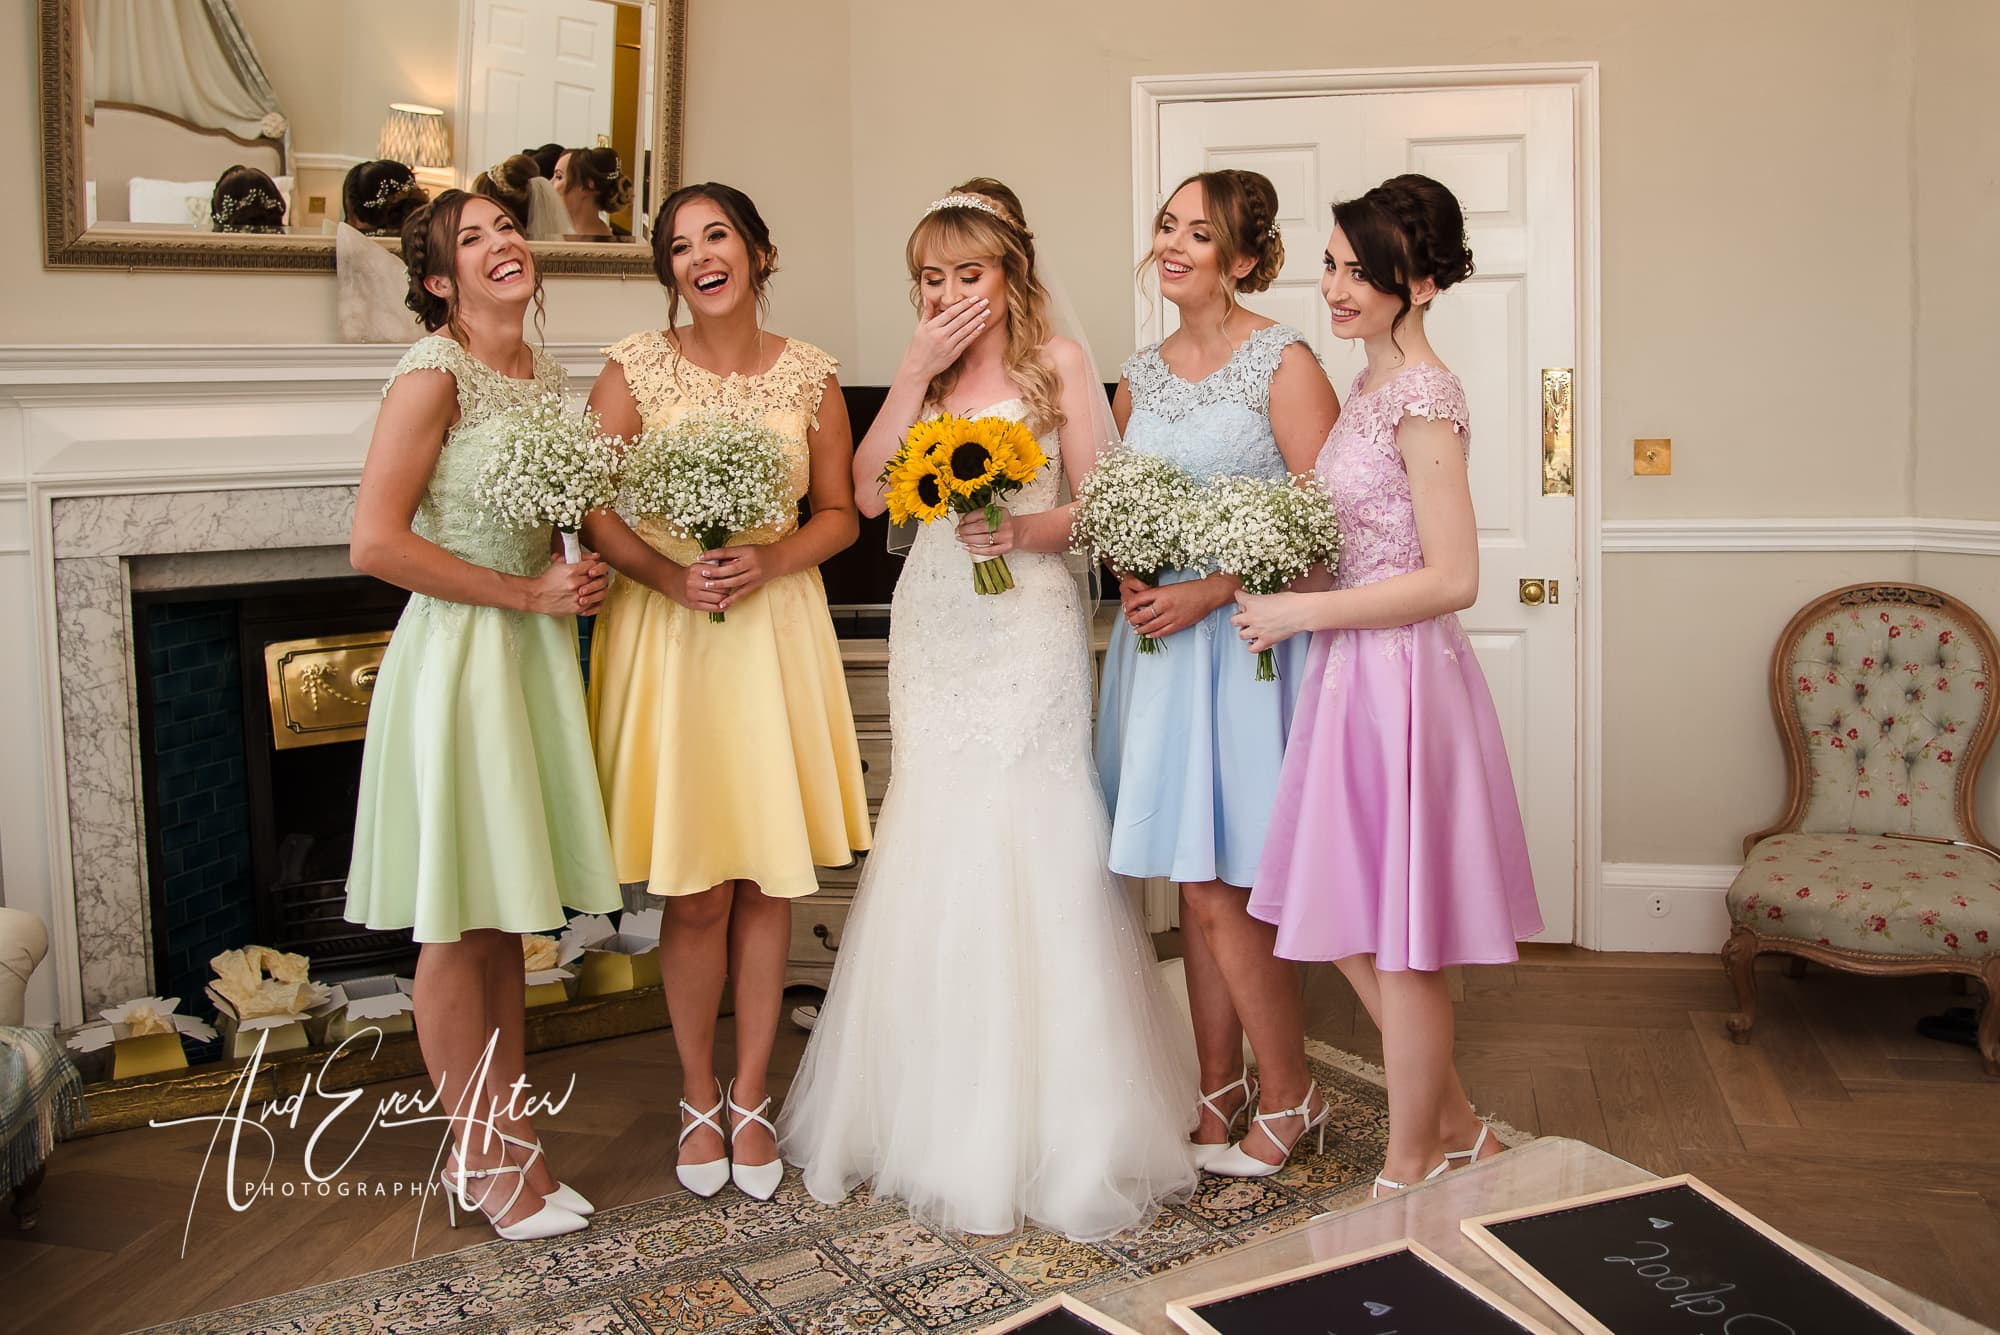 Middelton Lodge Wedding Photography, And Ever after Photography, bride, bridesmaids